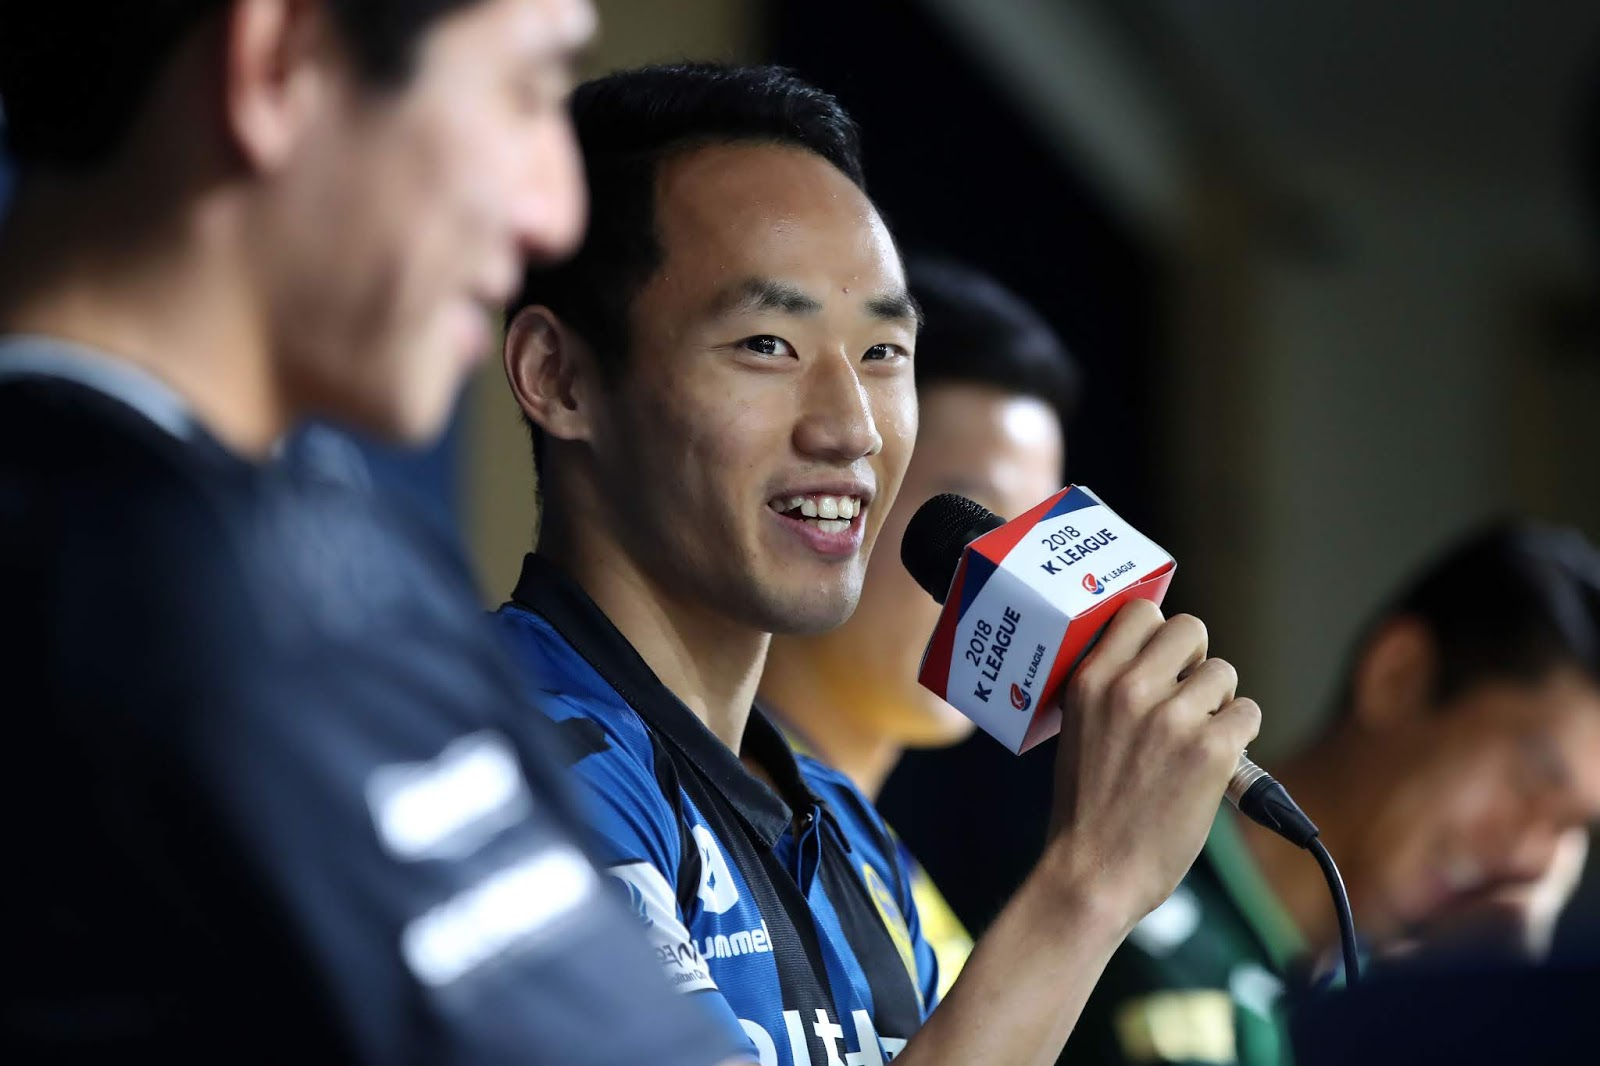 Incheon United winger Moon Seon-min being interviewed this week as one of the K League's representatives at the World Cup. (Image: K League)